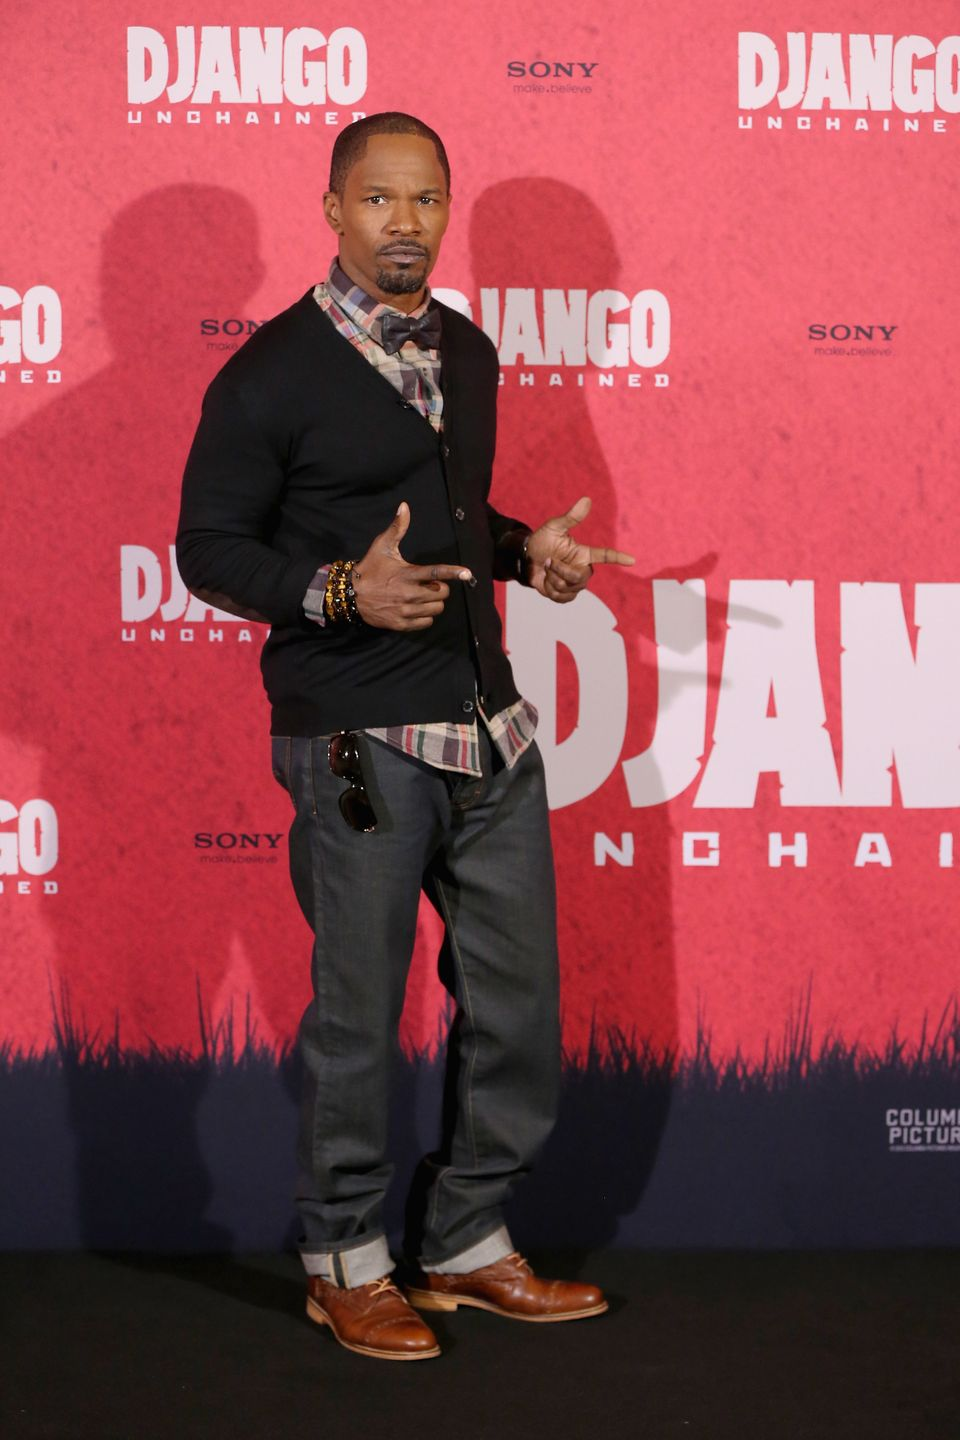 BERLIN, GERMANY - JANUARY 08:  Jamie Foxx attends 'Django Unchained' Berlin Photocall at Hotel de Rome on January 8, 2013 in